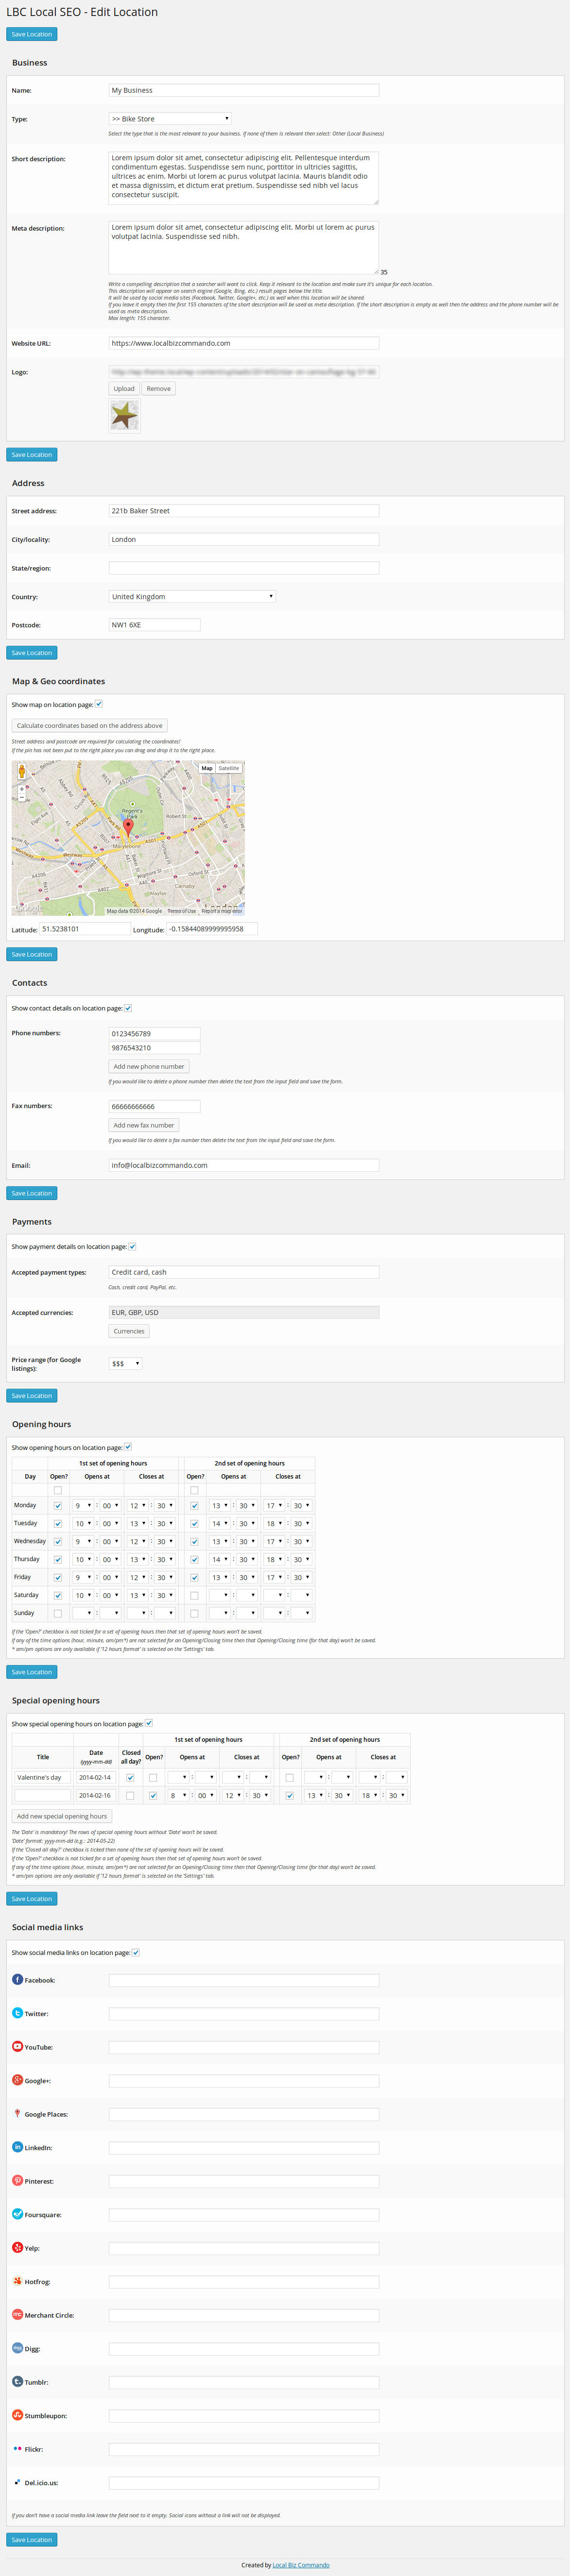 lbc-local-seo screenshot 2